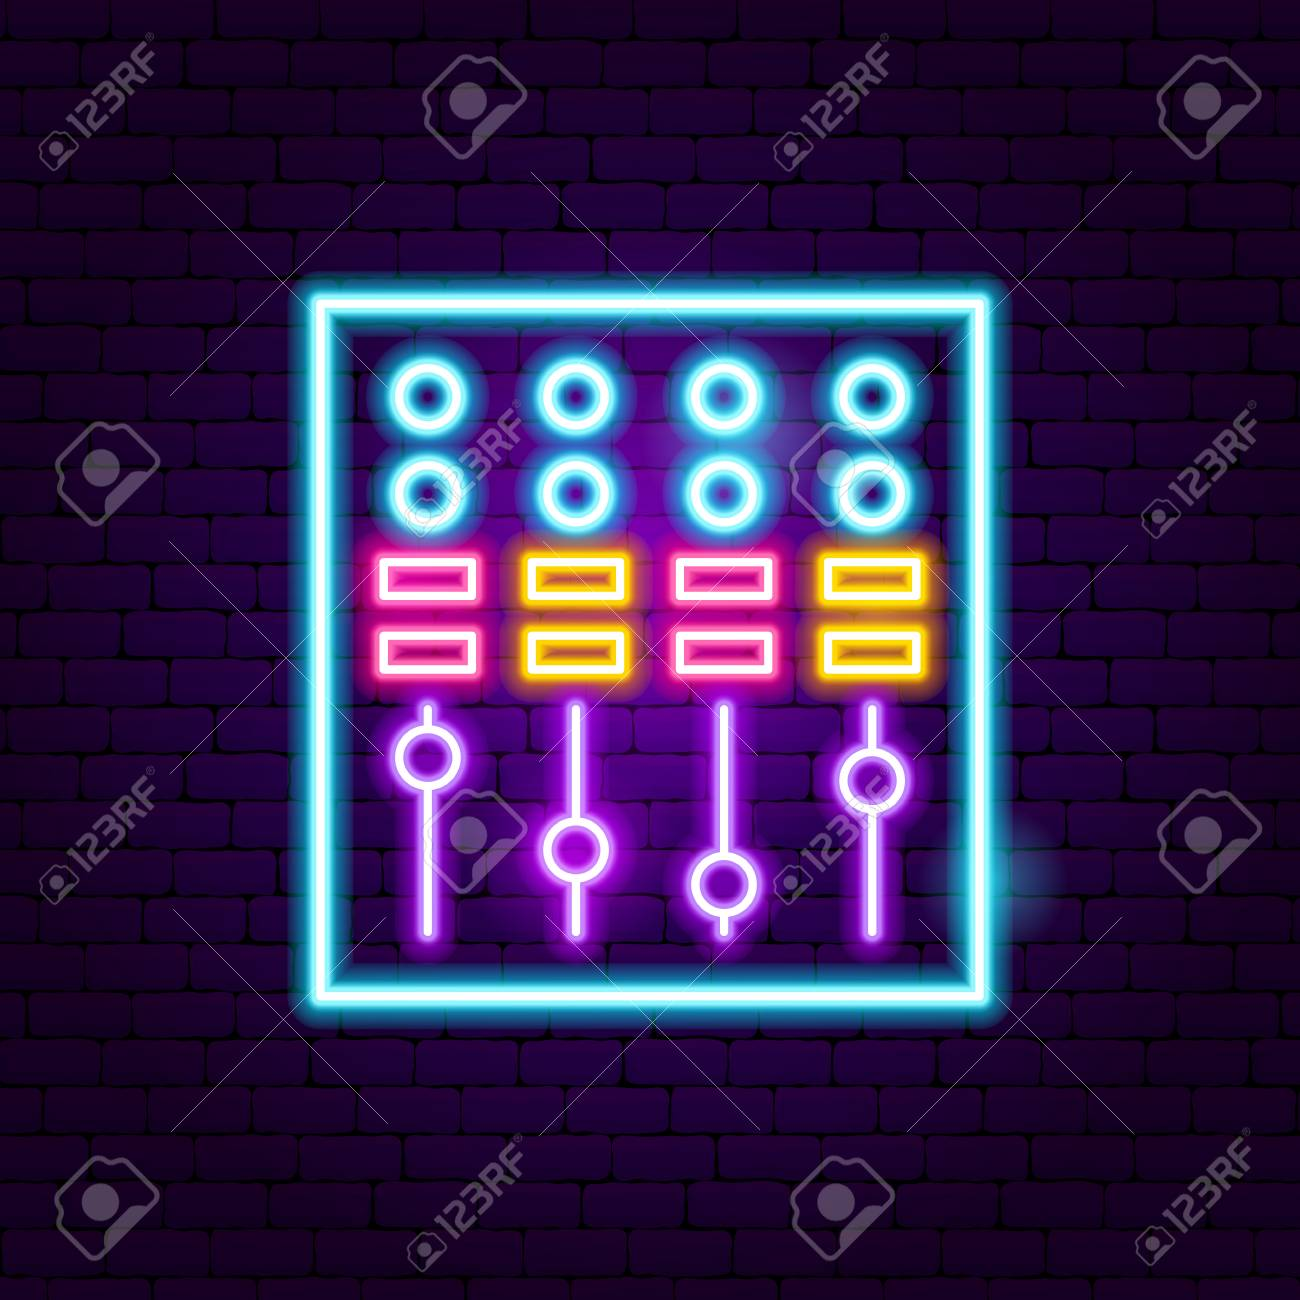 DJ Mixer Neon Sign  Vector Illustration of Music Promotion